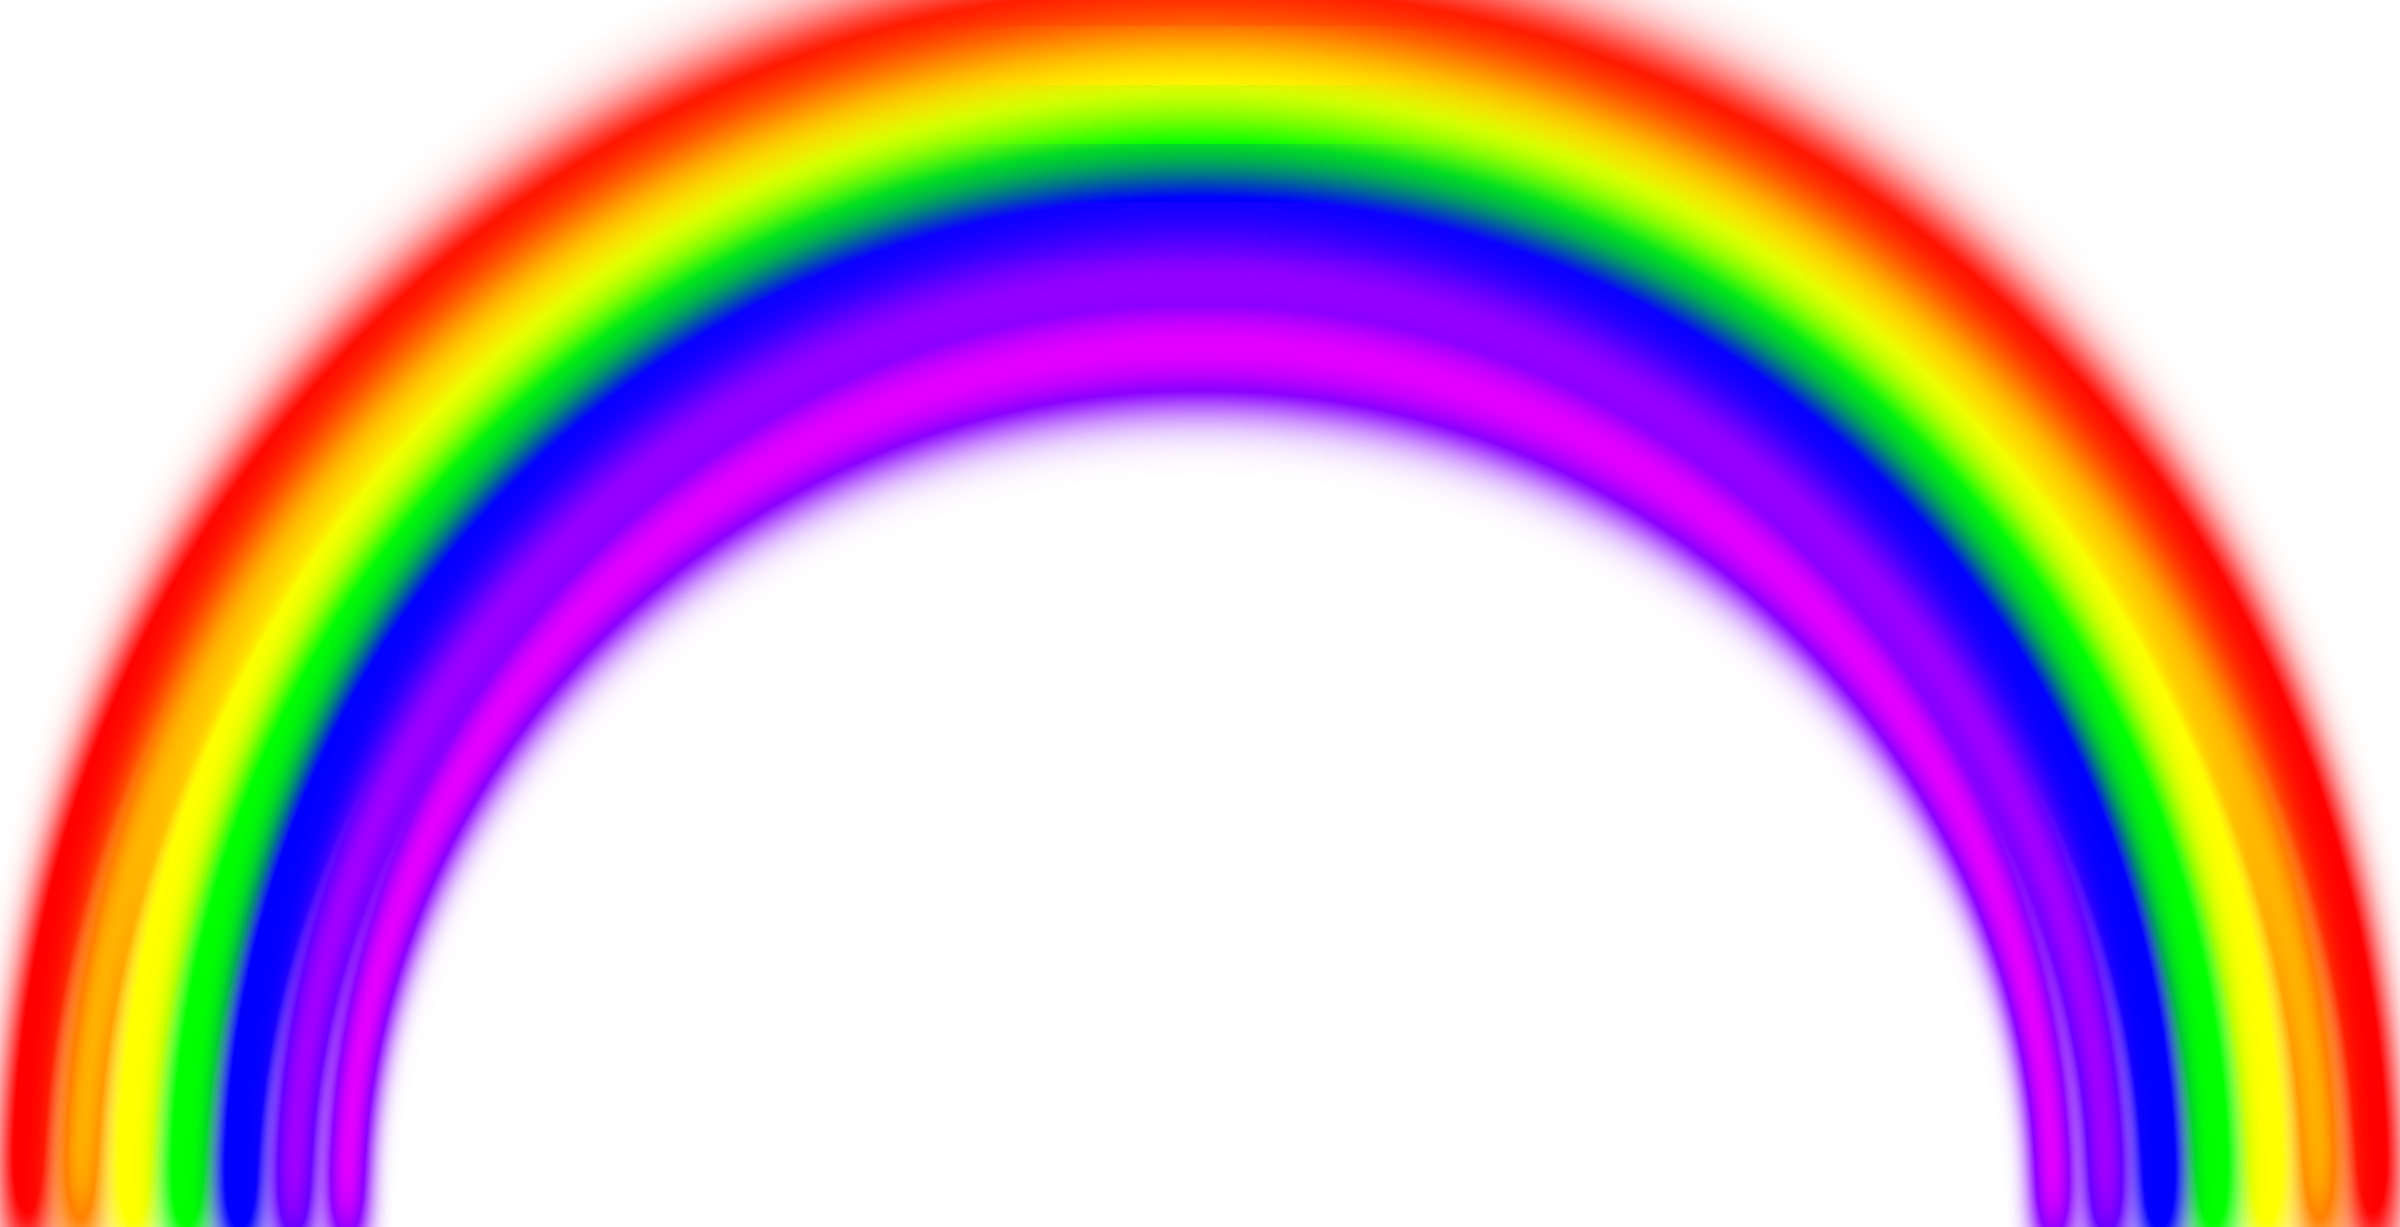 Simple Rainbow with Blur by X-Ray